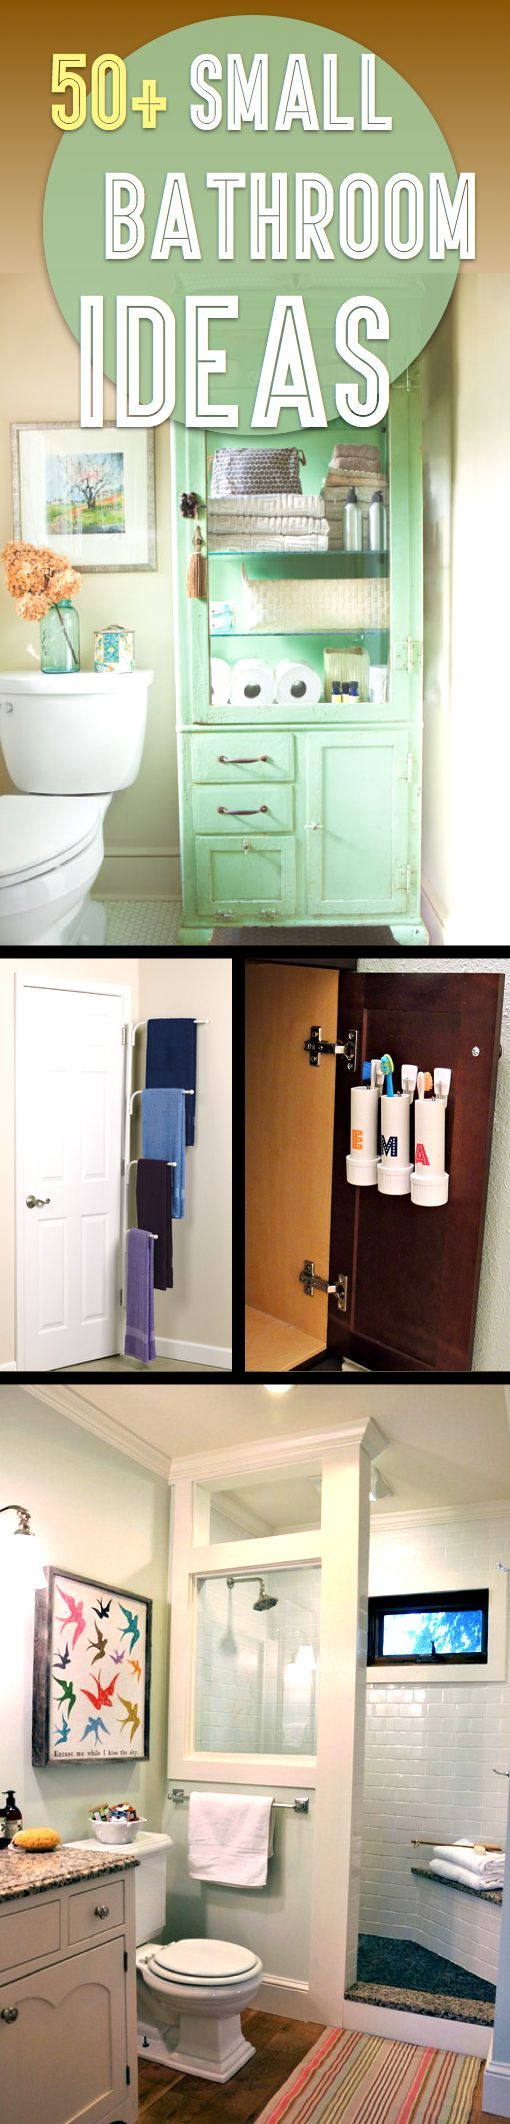 50 small bathroom ideas that you can use to maximize the available storage space if you have - Small bathroom design ideas for maximum utilization of small space ...